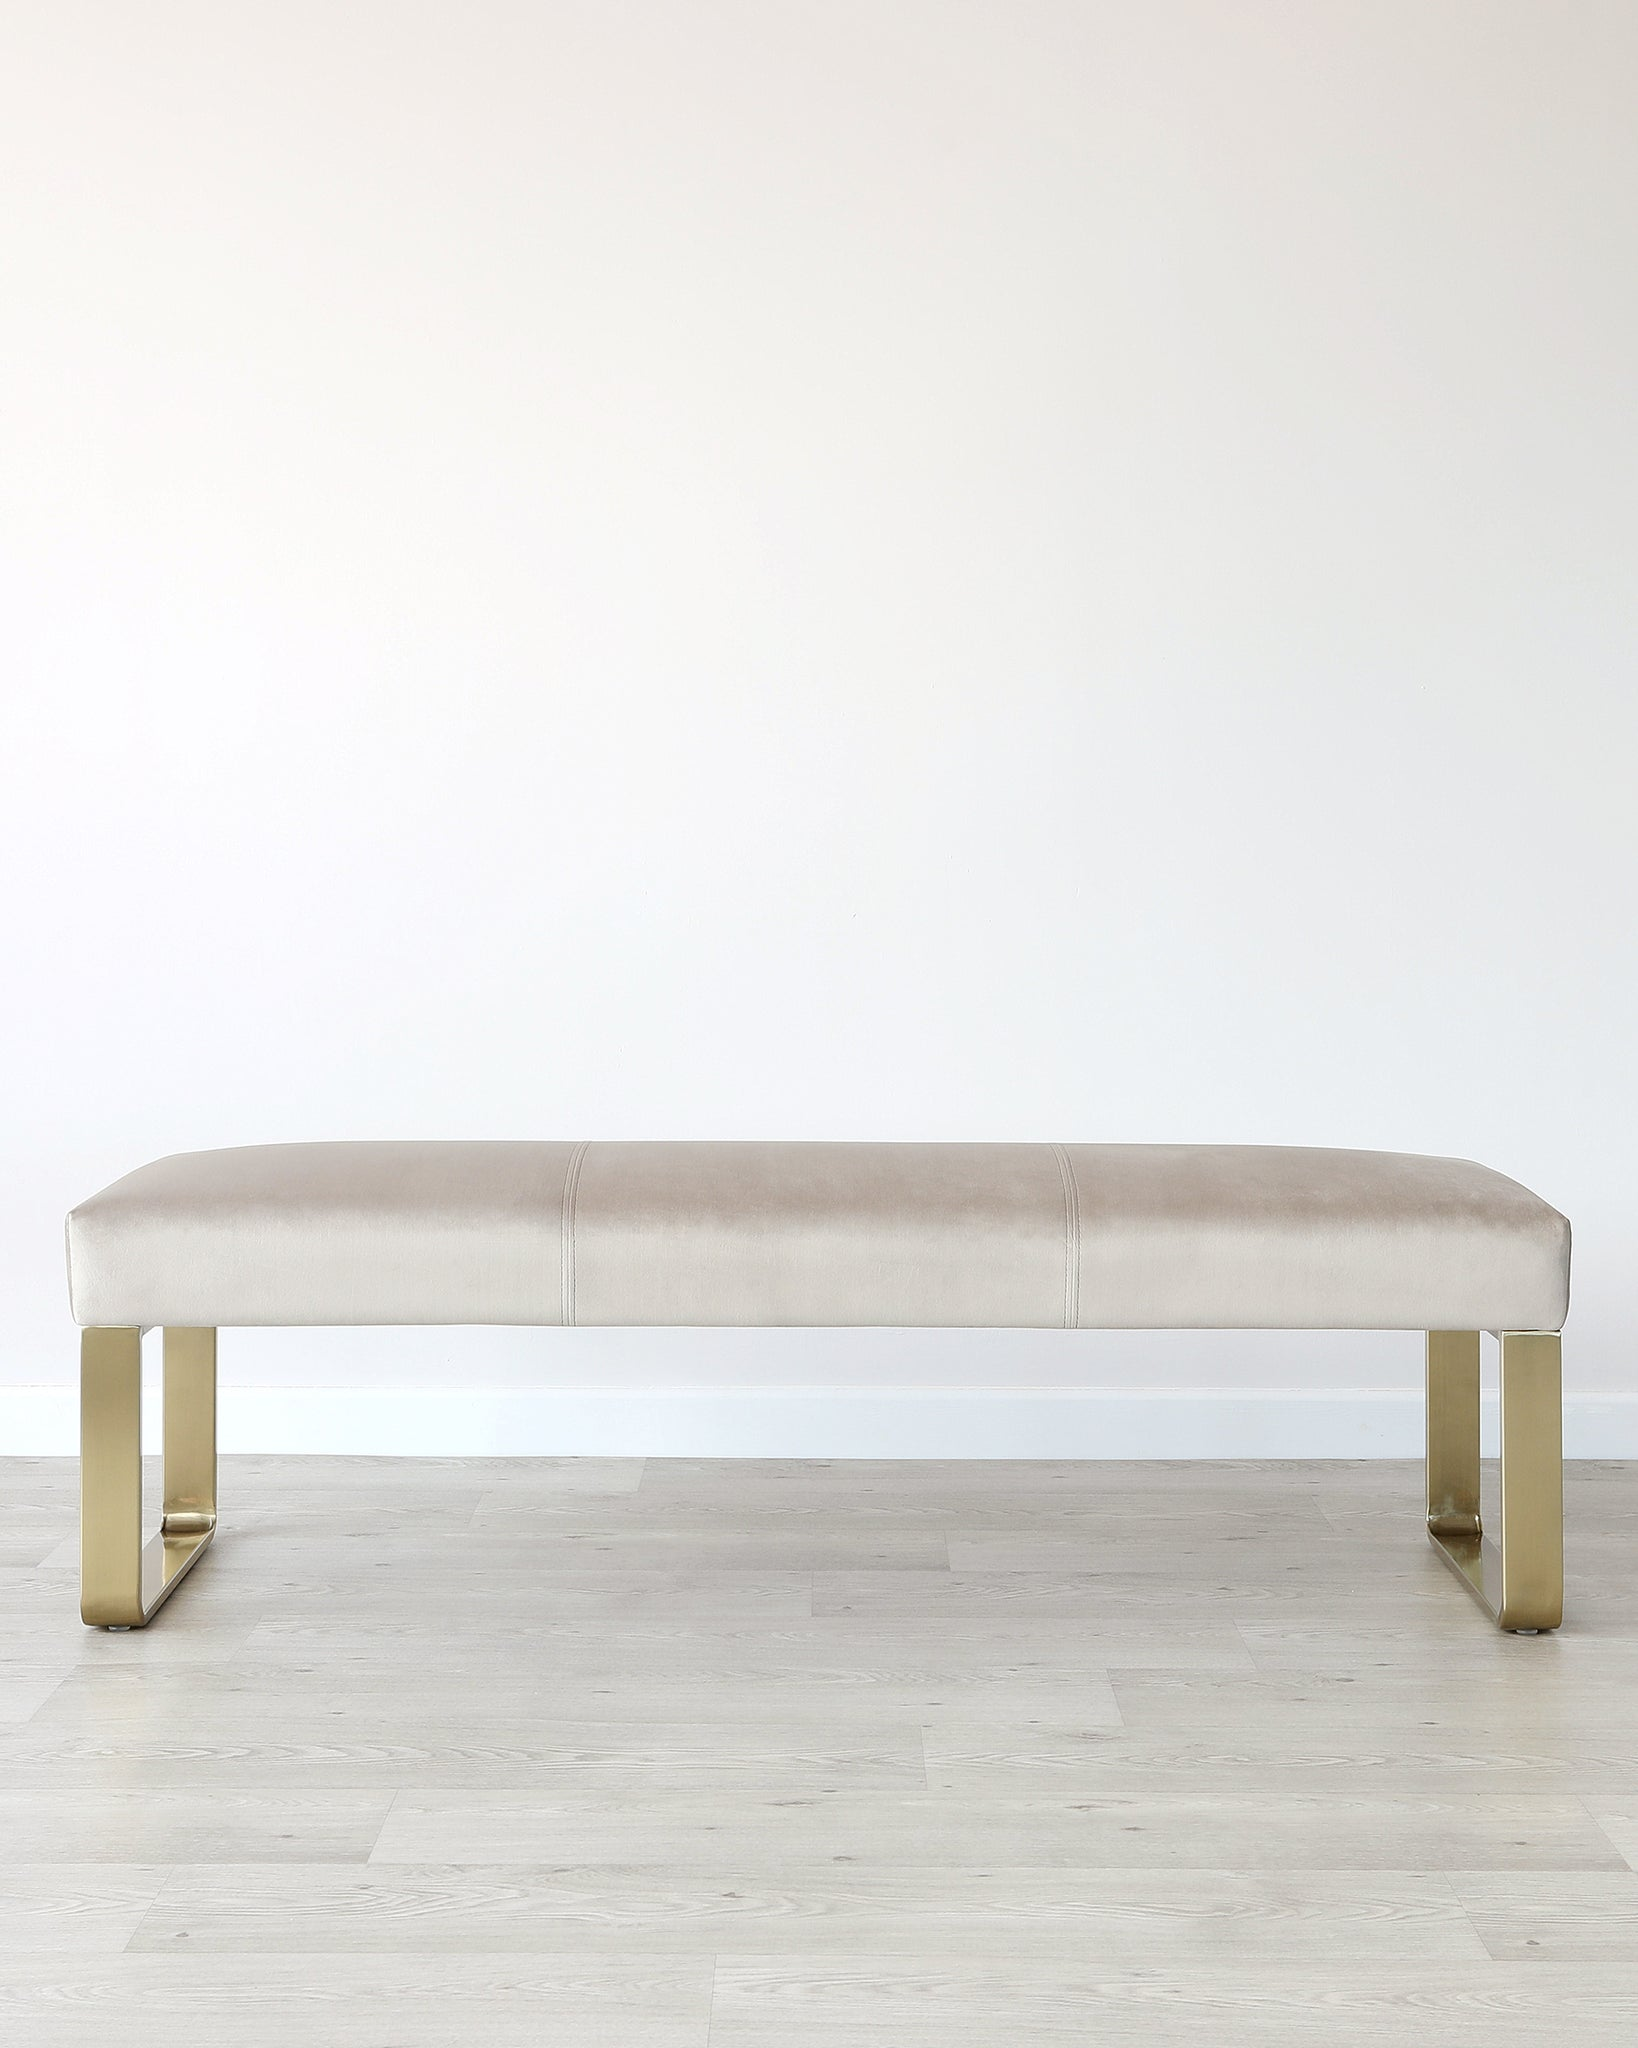 Ophelia 3 Seater Champagne & Brass Velvet Bench Without Backrest